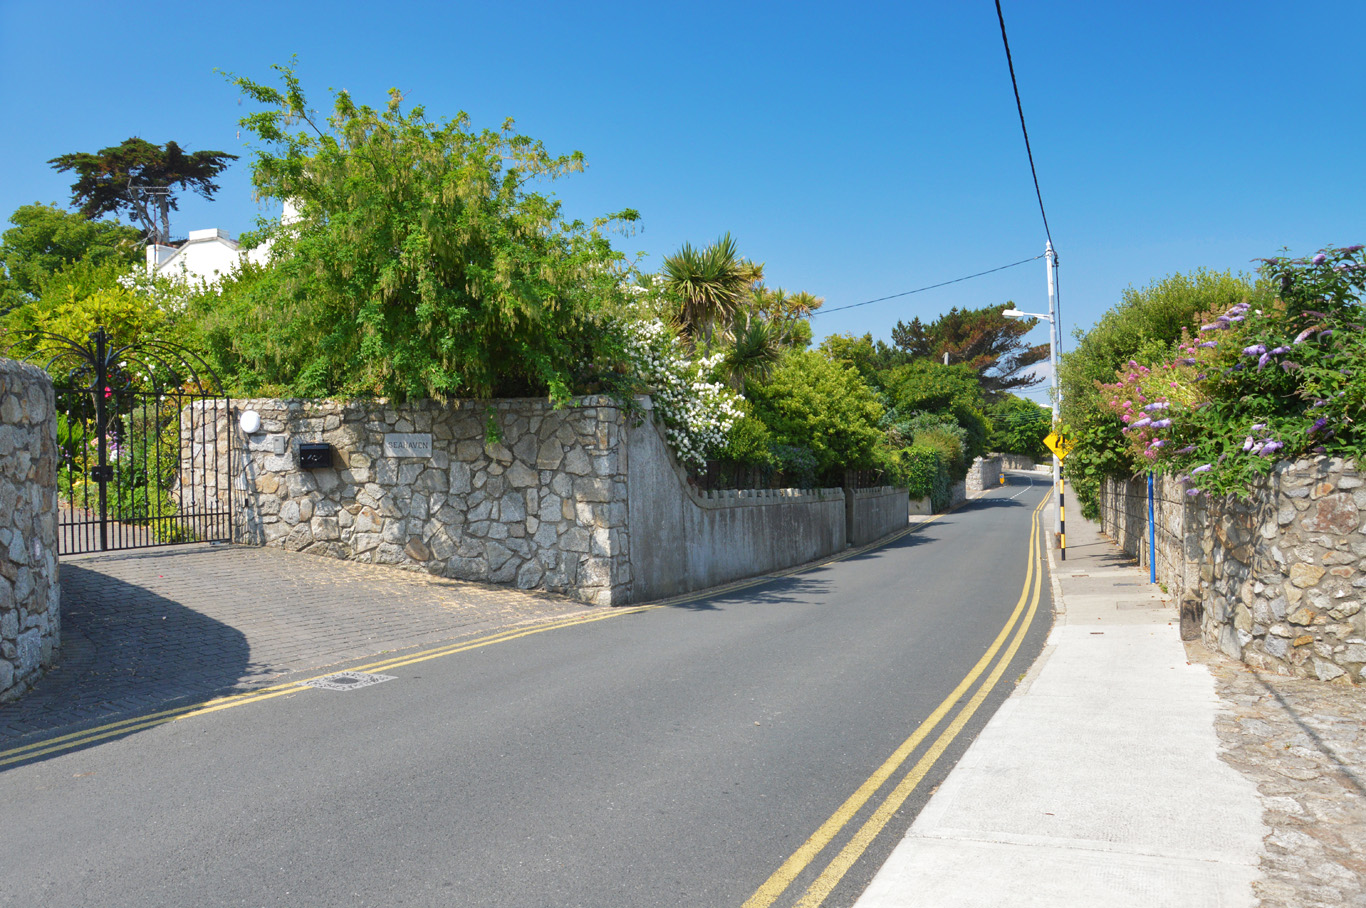 Coastal road in Dalkey